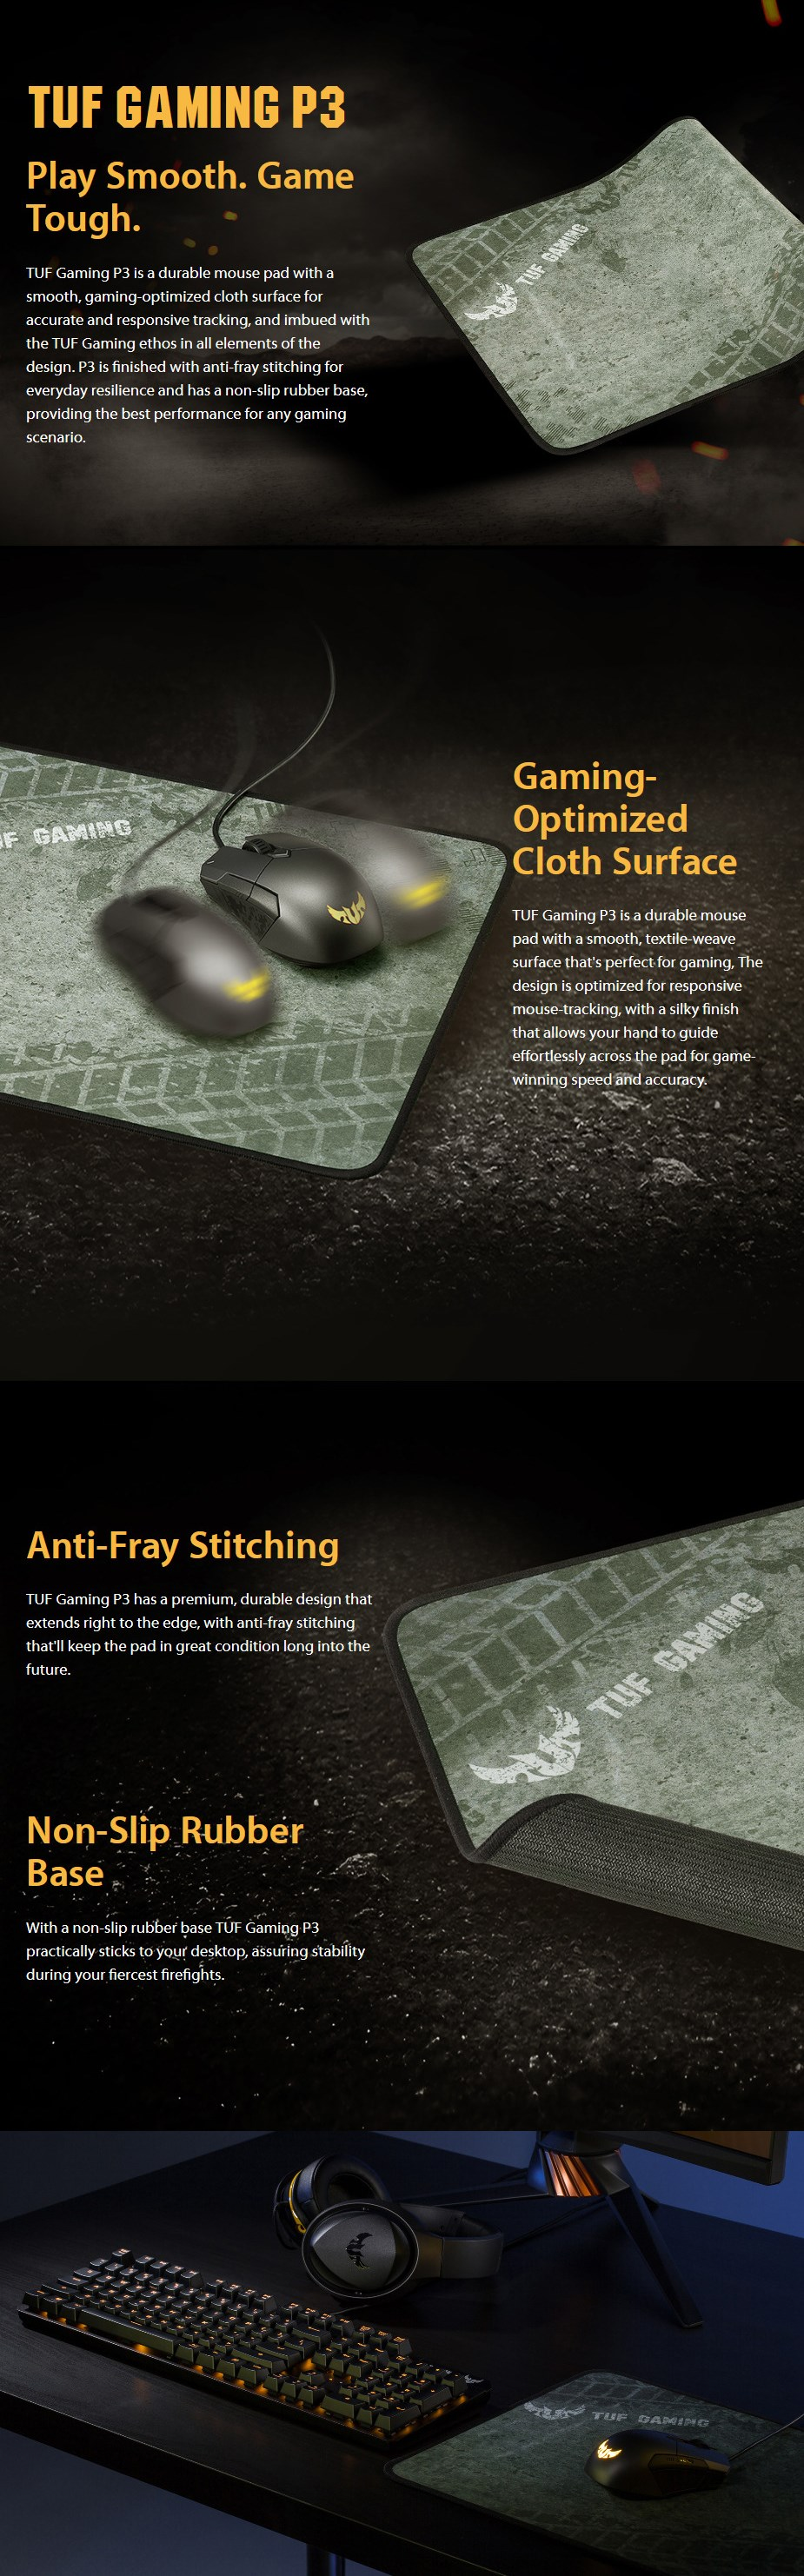 ASUS TUF Gaming P3 Cloth Gaming Mouse Pad - Desktop Overview 1